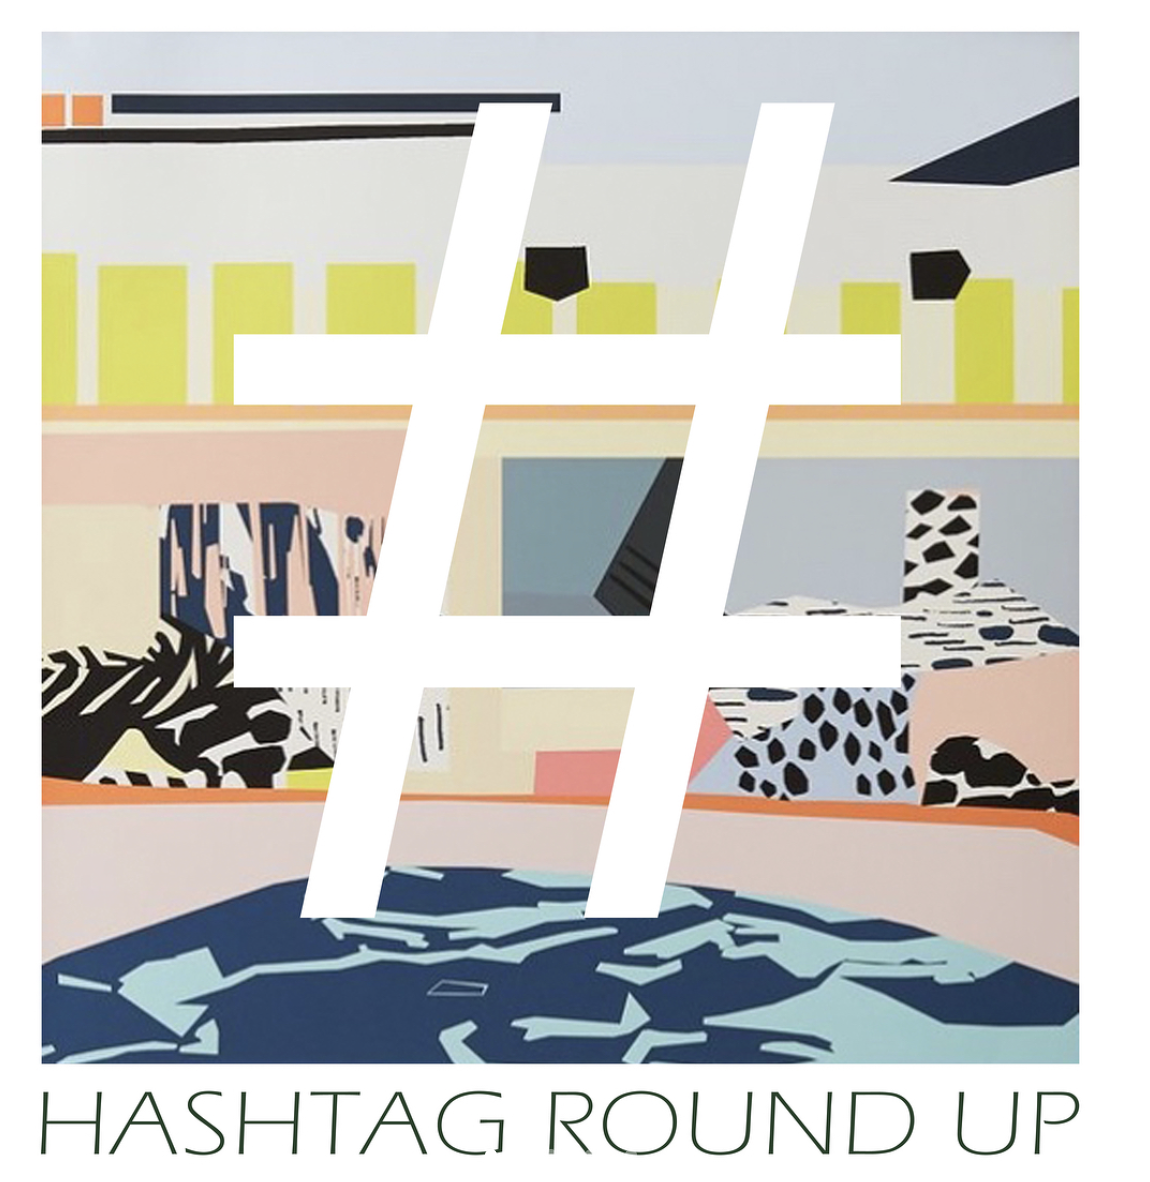 The essential  Hashtag Round Up  from Sam at  Eclectic Street .